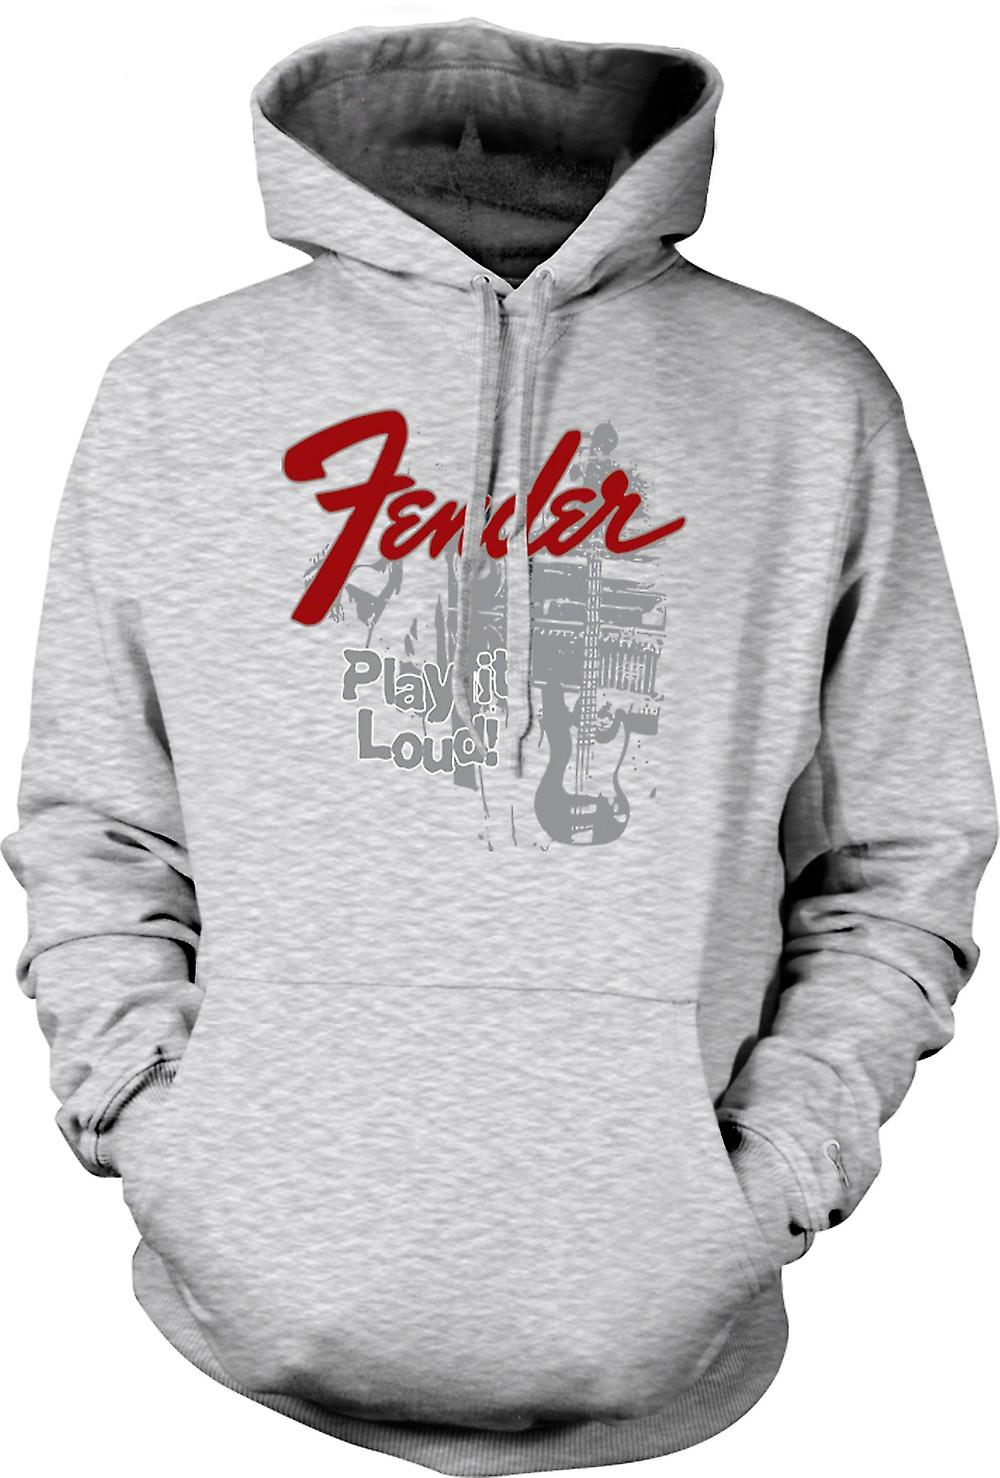 Mens Hoodie - Fender Strat Play Loud - Guitar